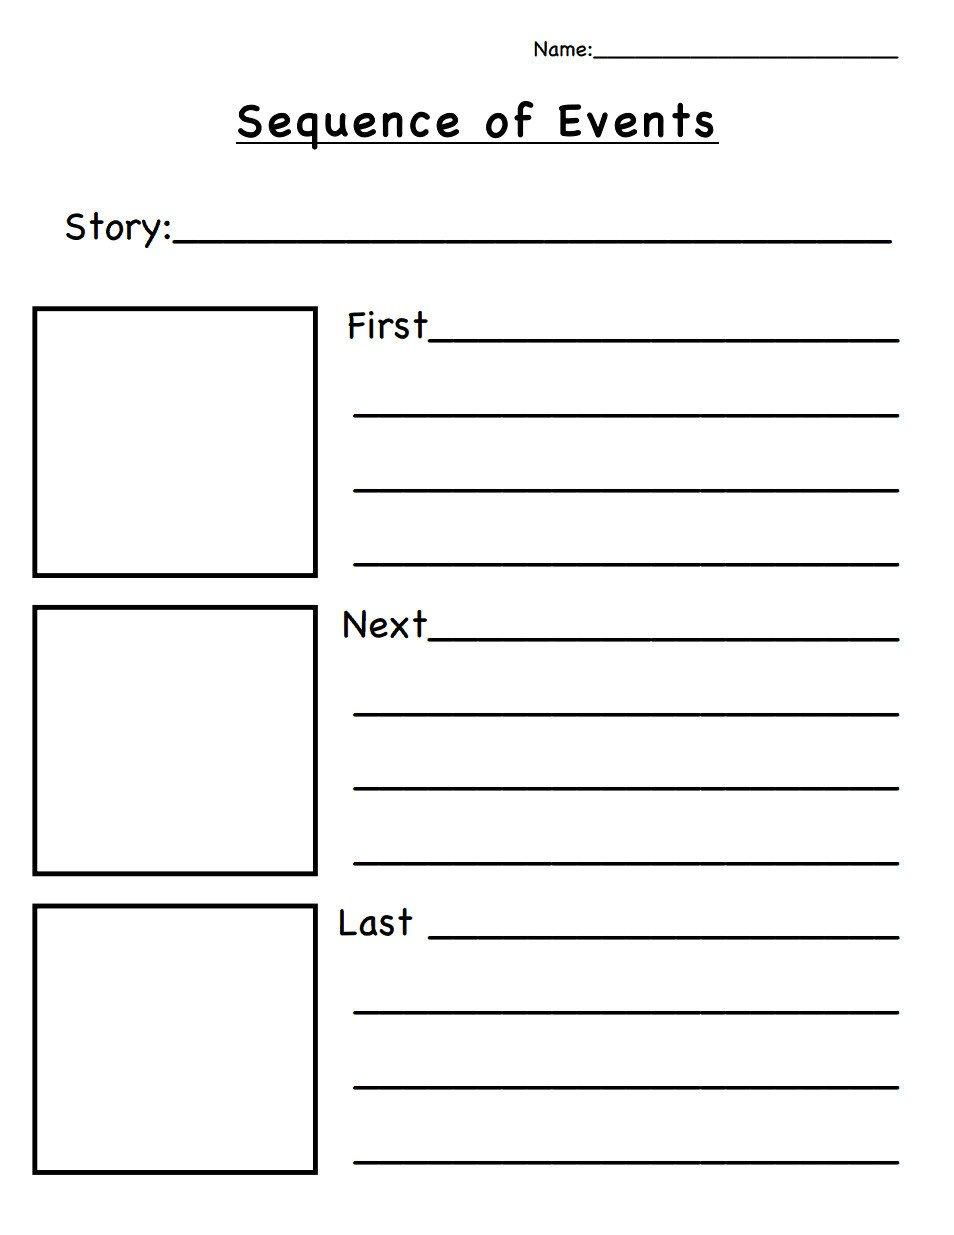 Sequence Of events Worksheets Pdf 4 Sequencing events In A Story Worksheets Worksheets Schools